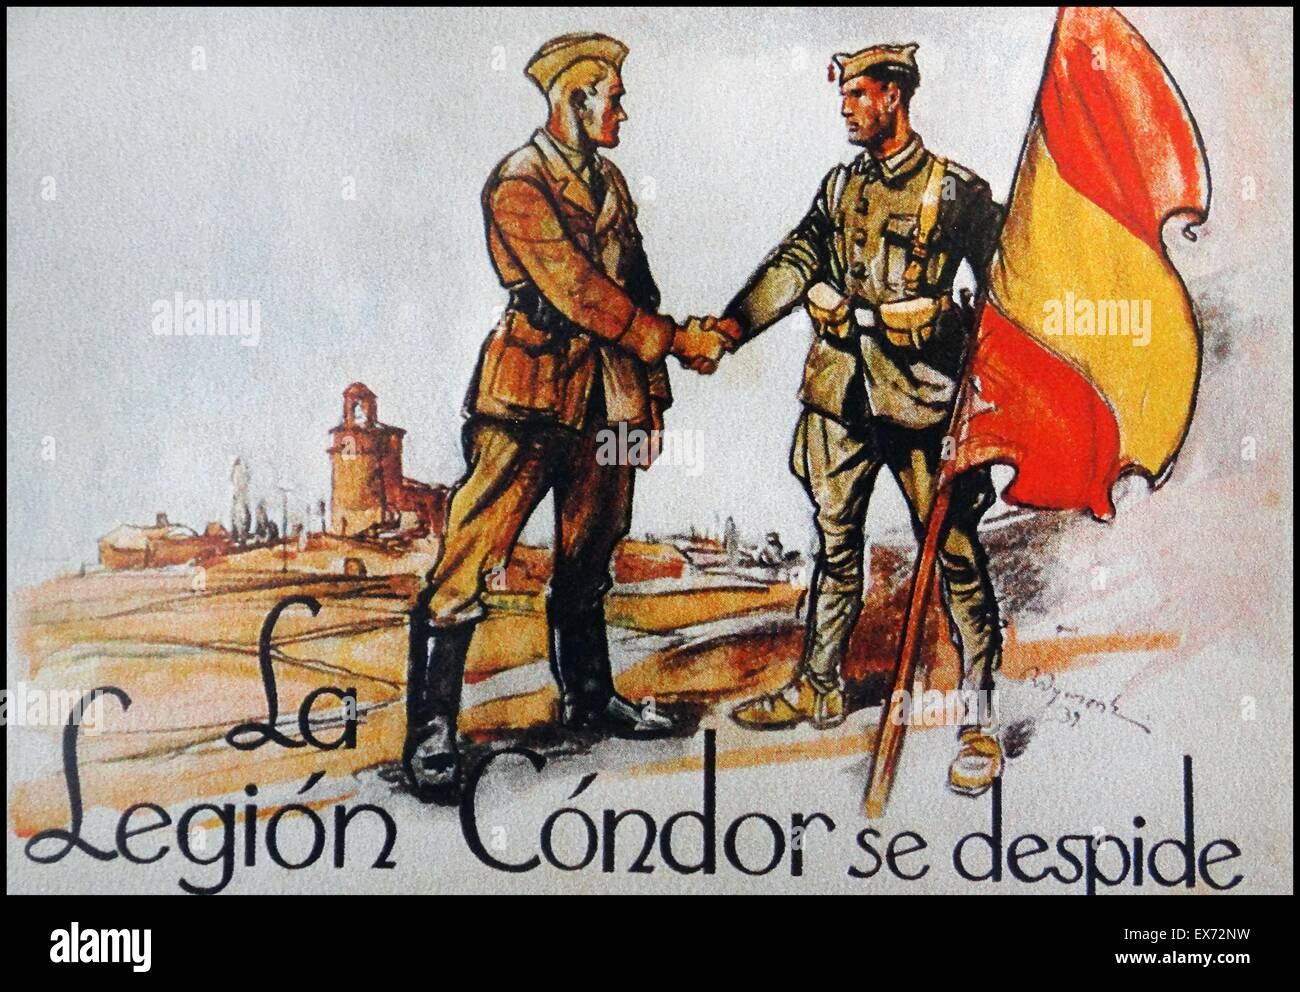 postcard showing the departure of a German Condor Legion member as he shakes hands with a Nationalist soldier, during - Stock Image